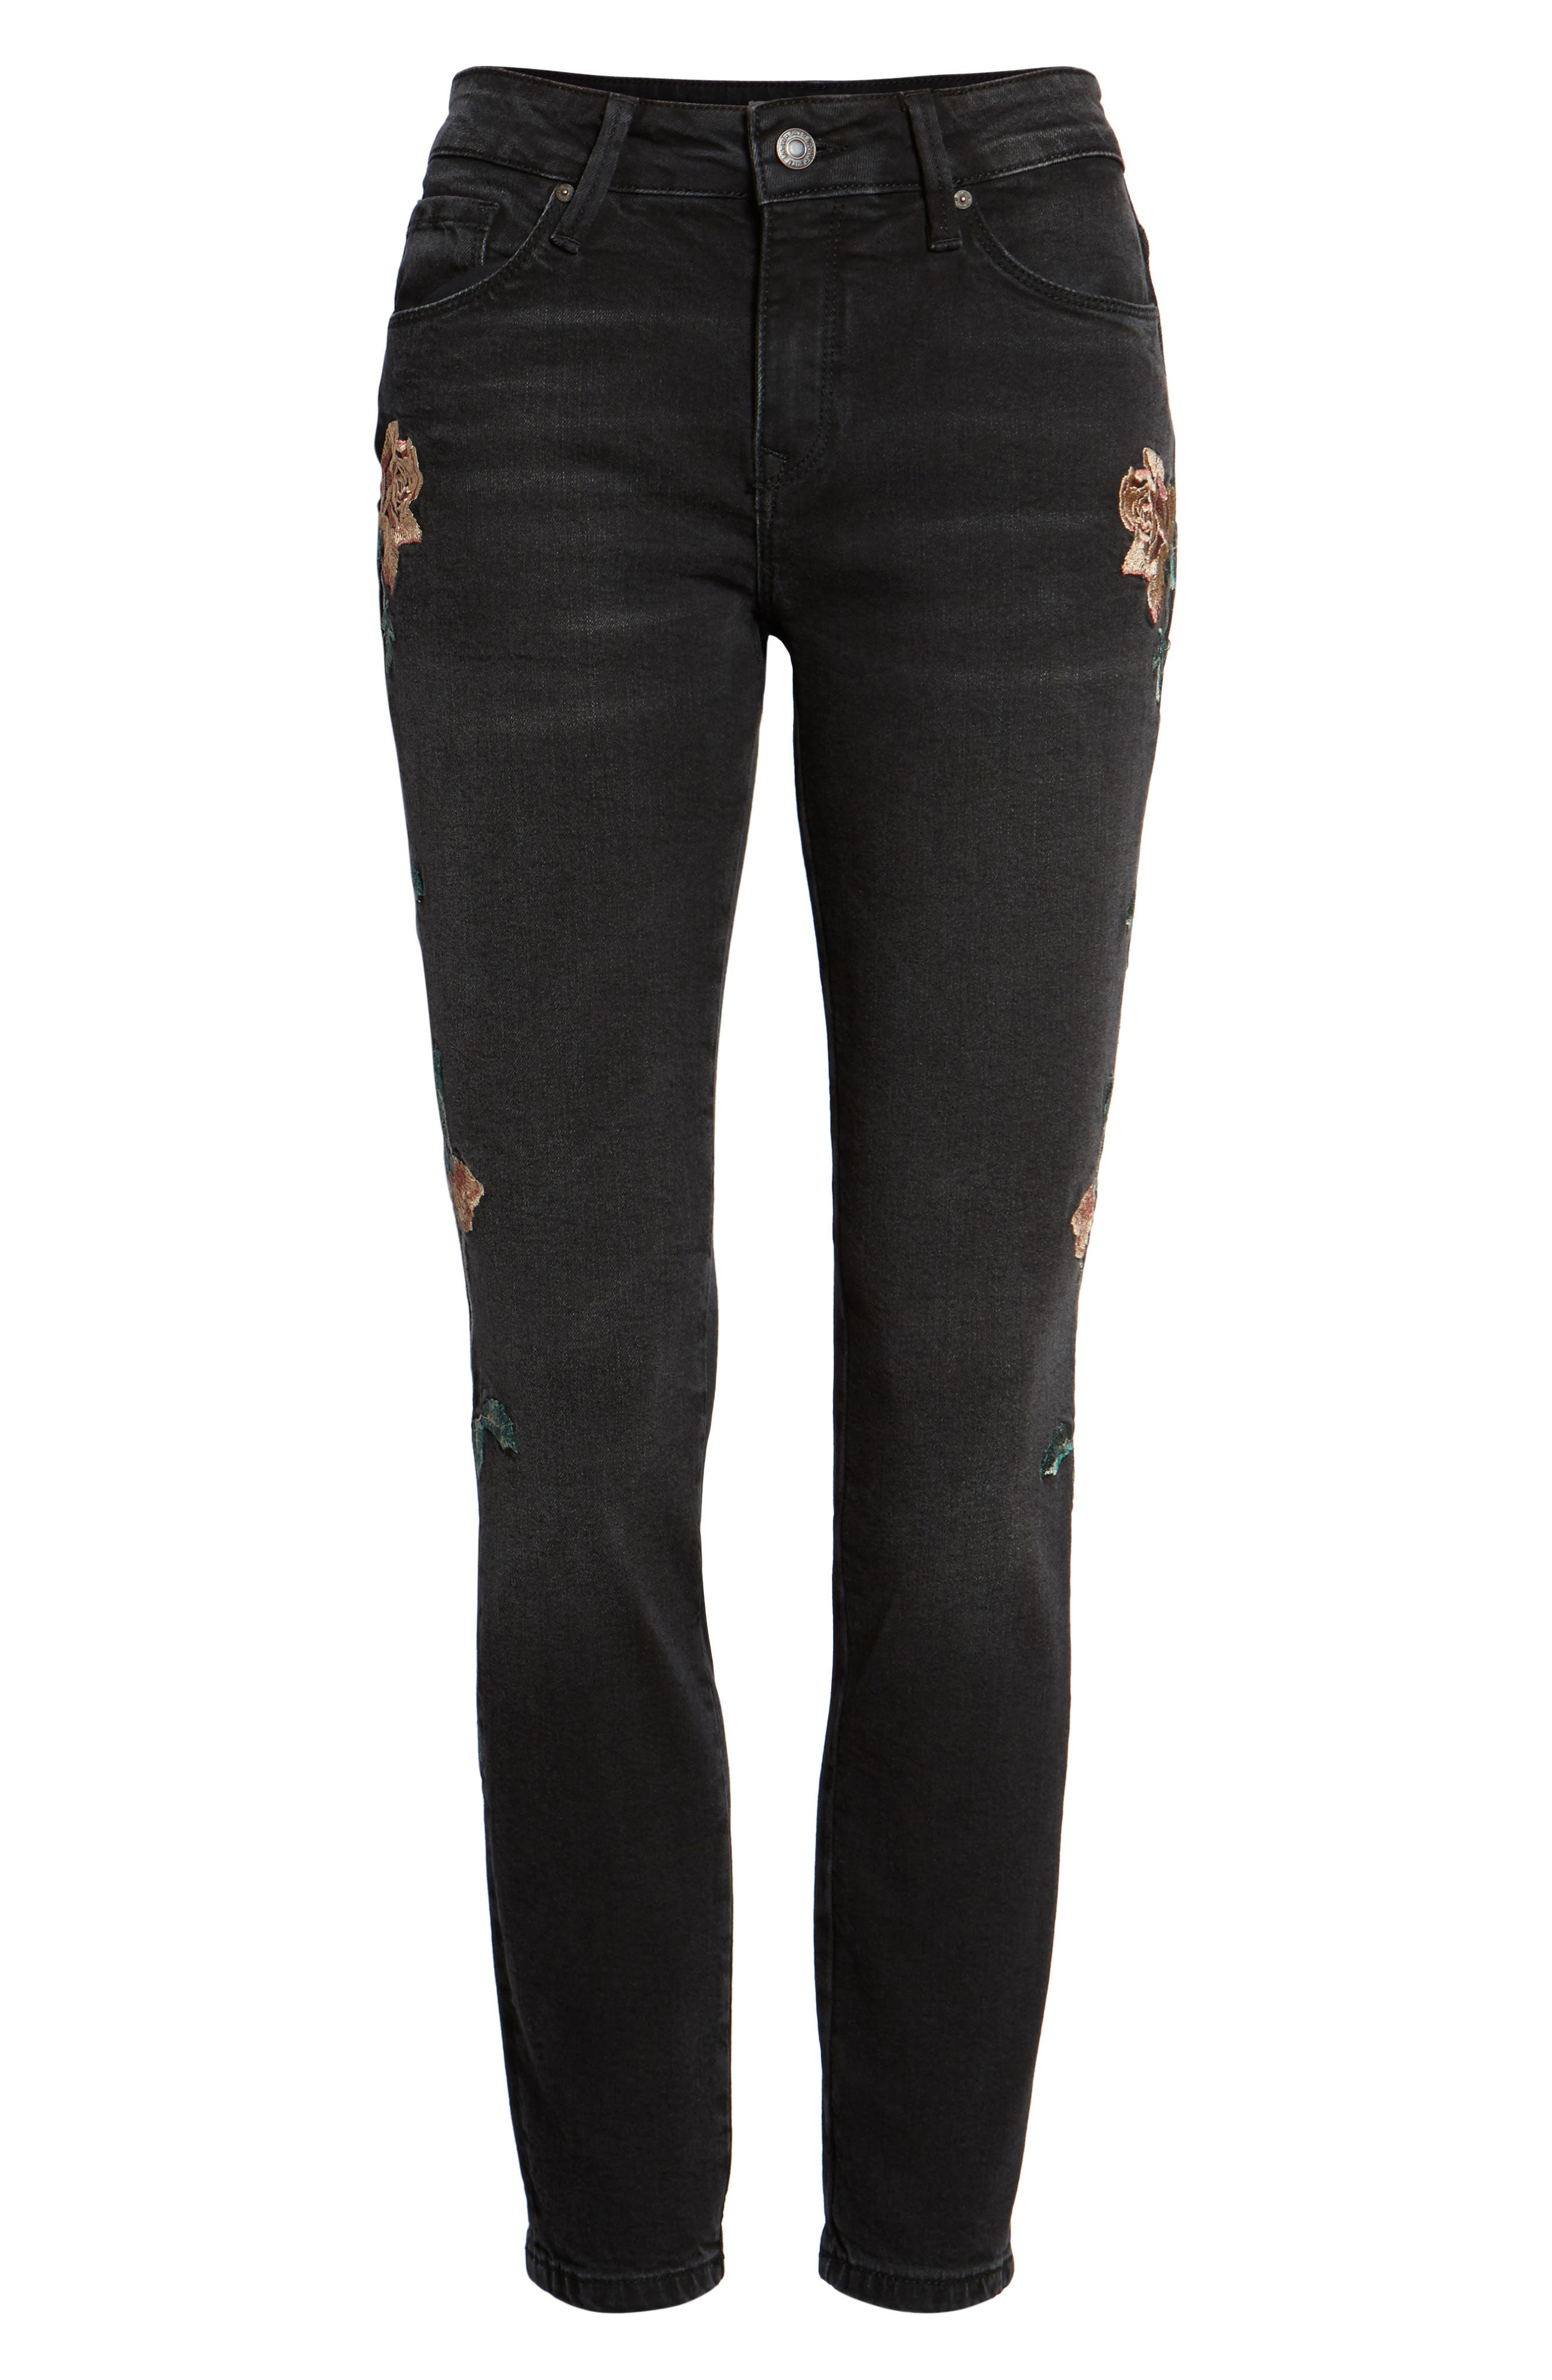 Adriana Embroidered Skinny Jeans,                             Alternate thumbnail 7, color,                             002